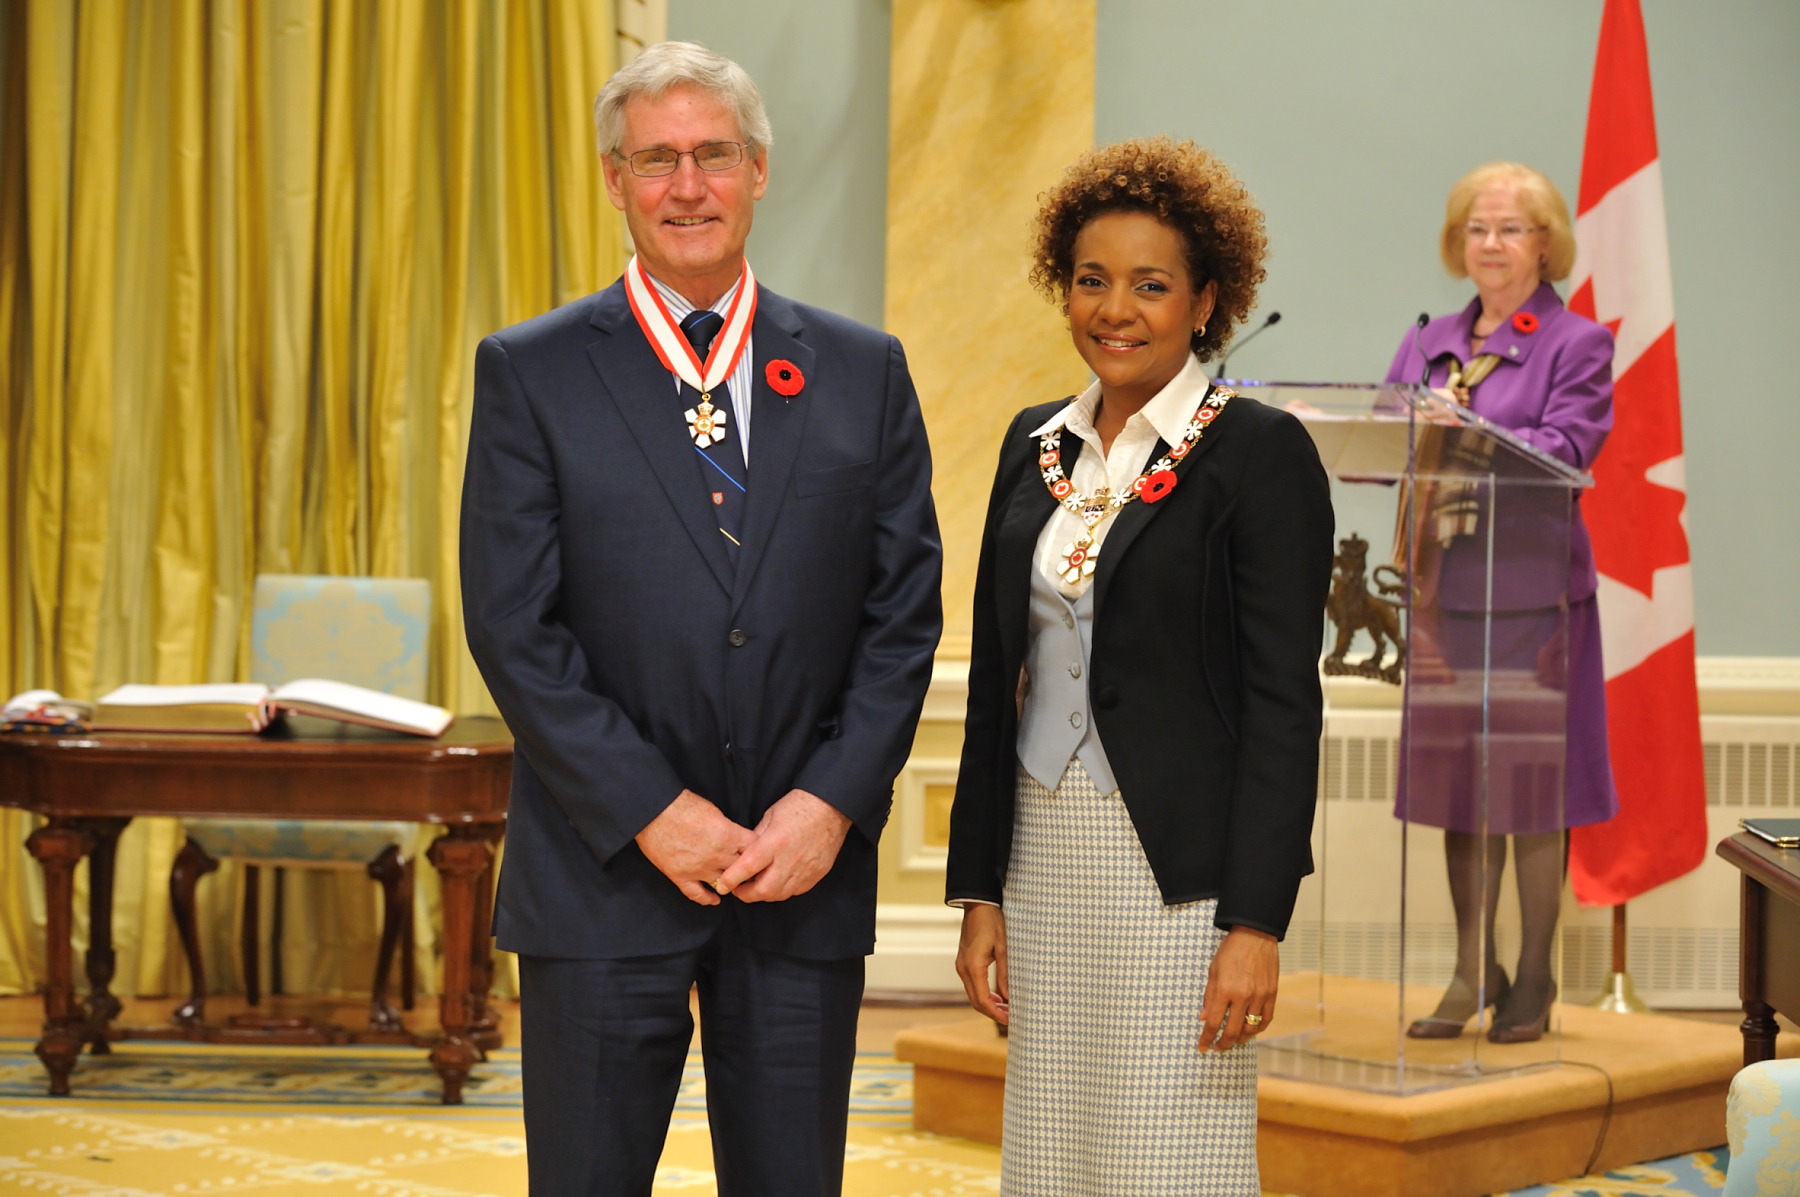 Her Excellency the Right Honourable Michaëlle Jean, Governor General of Canada, presented the insignia of Officer of the Order of Canada to Robin Boadway, O.C., one of Canada's leading public finance economists.